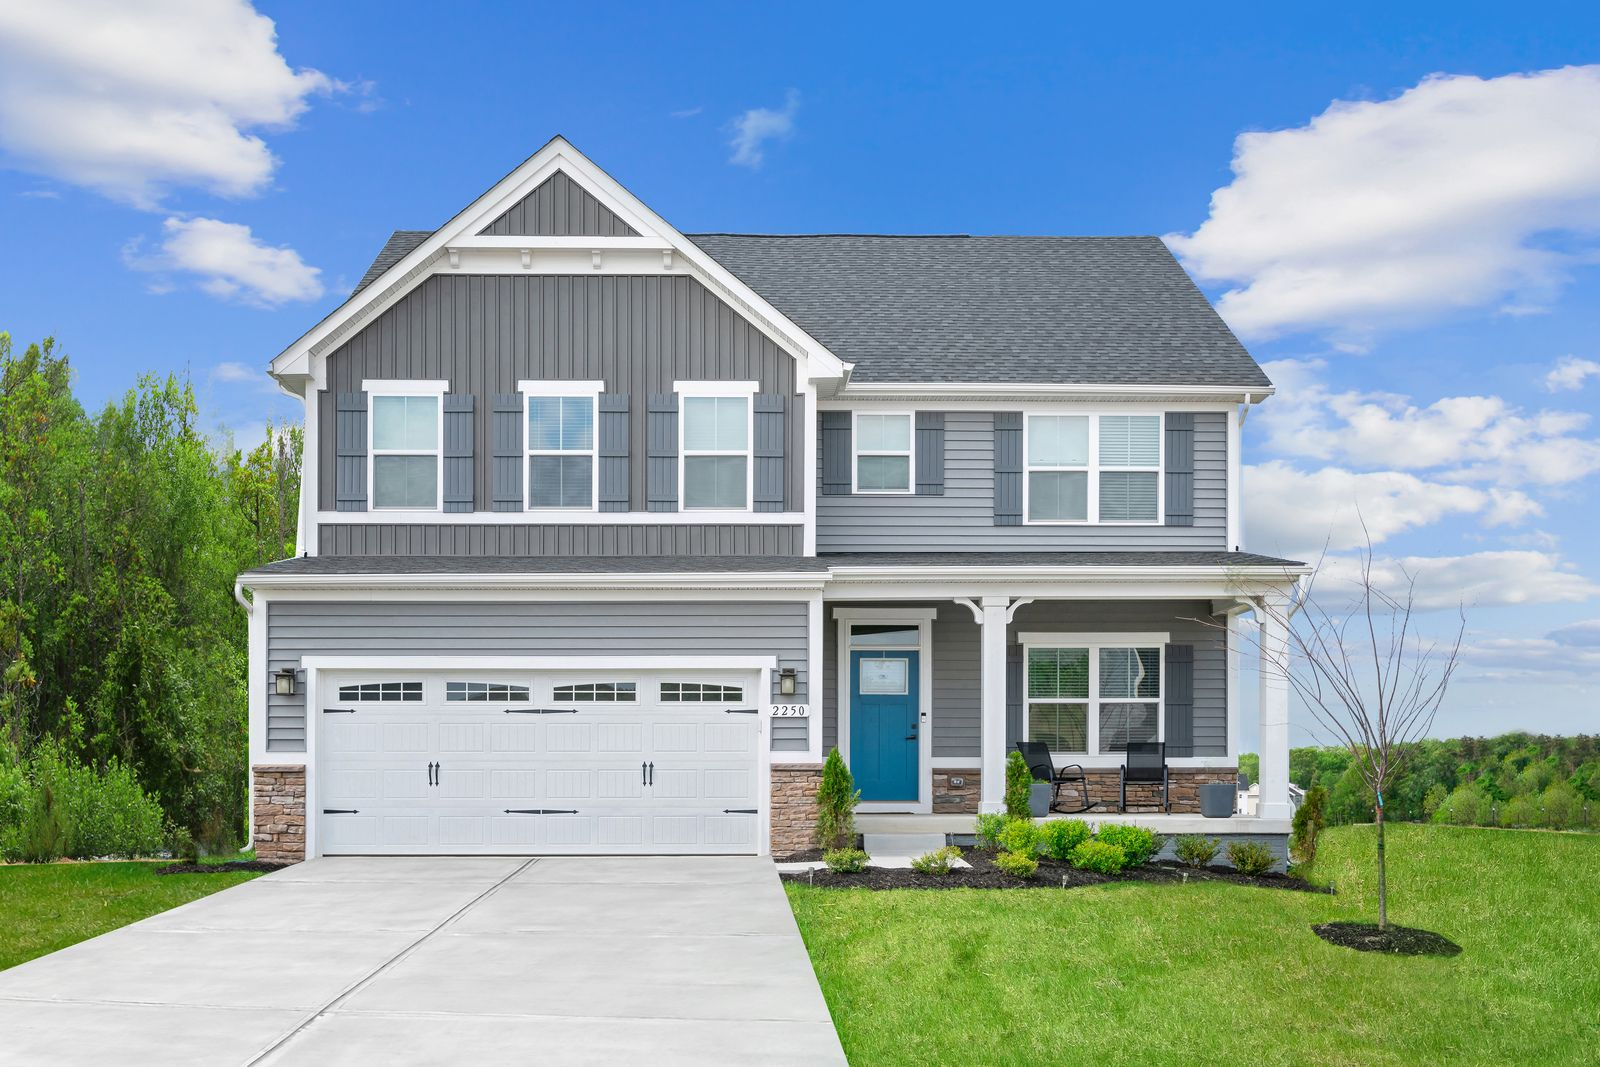 NEW 2-STORY AND RANCH HOMES IN BEAVERCREEK SCHOOLS AT RIVER RESERVE